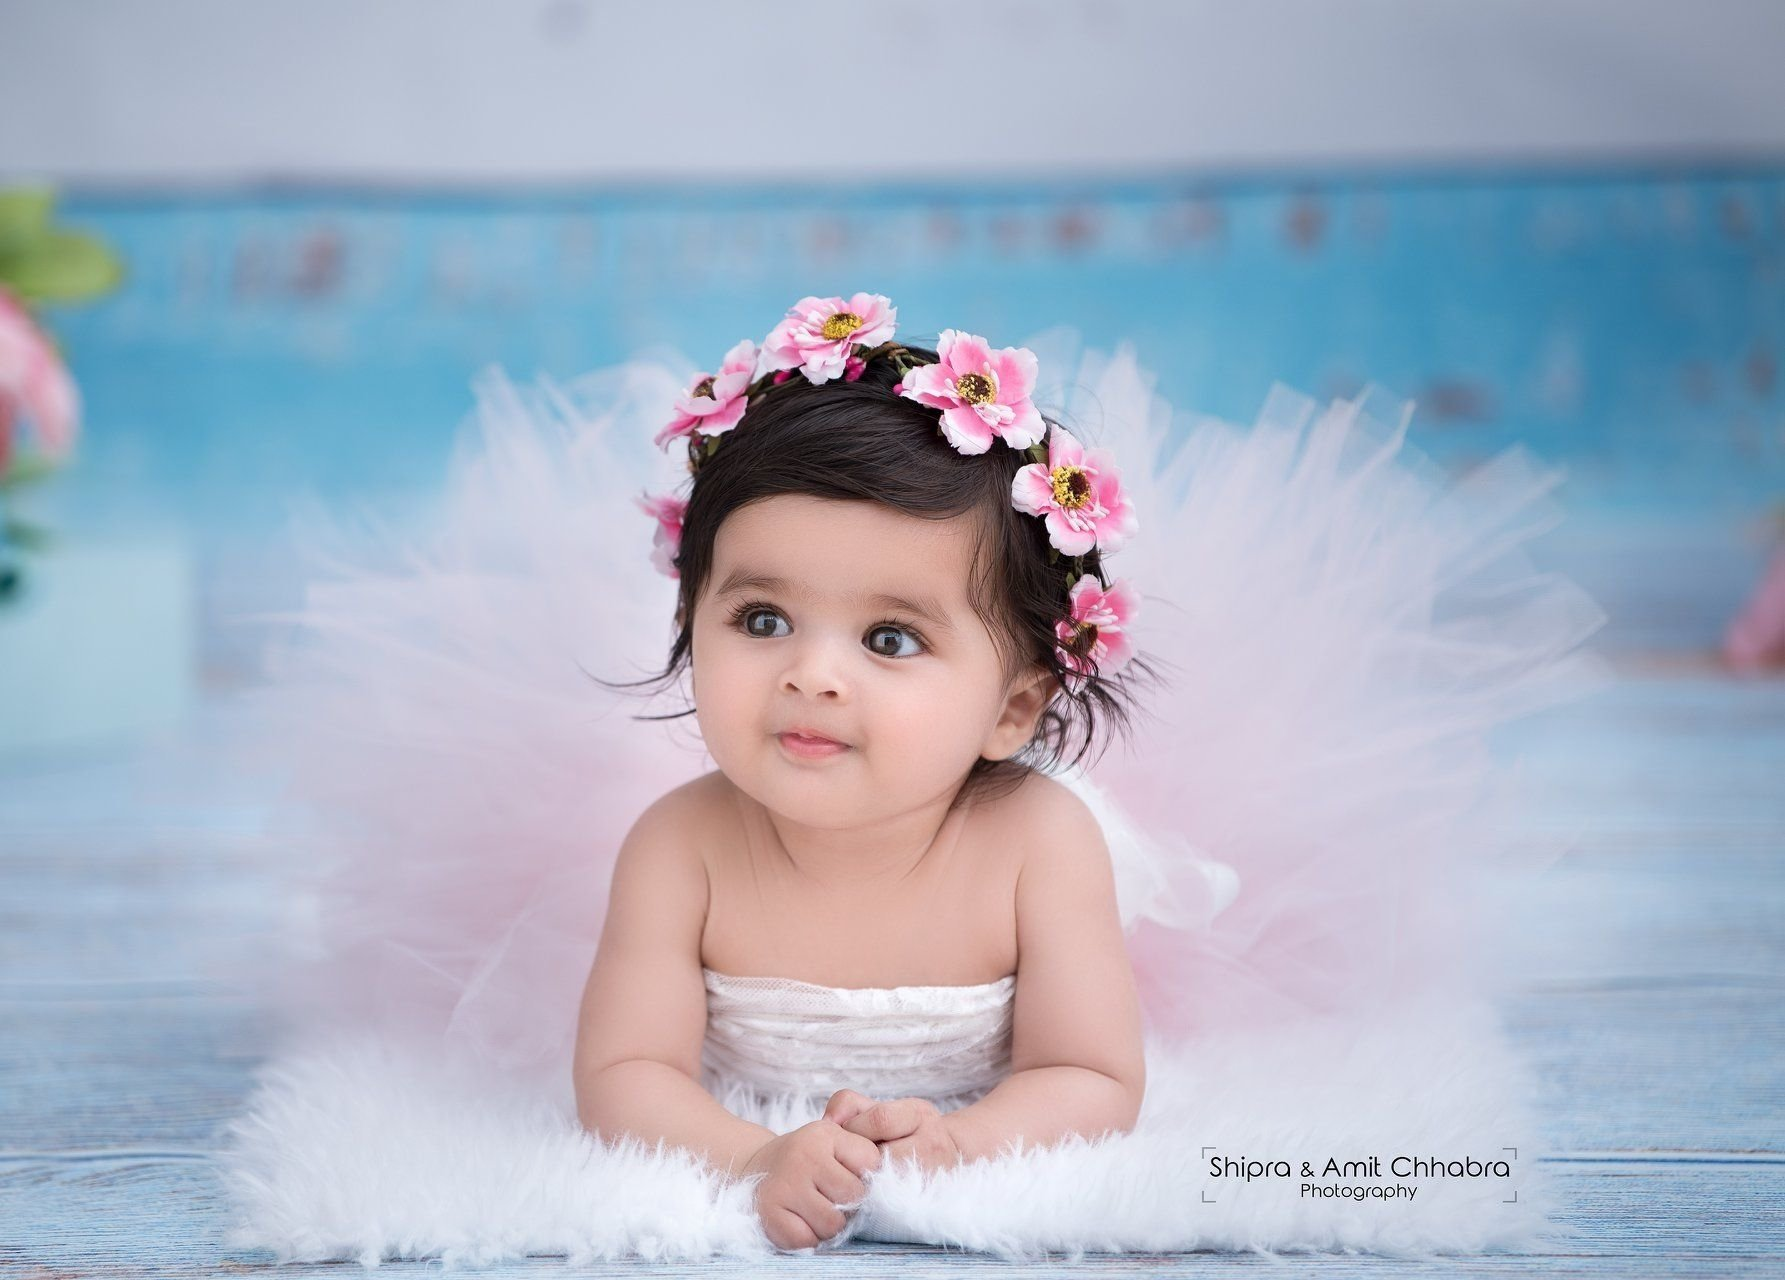 10 Nice 6 Month Baby Girl Picture Ideas infant photo shoot baby girl 6 month baby photo shoot ideas 2021